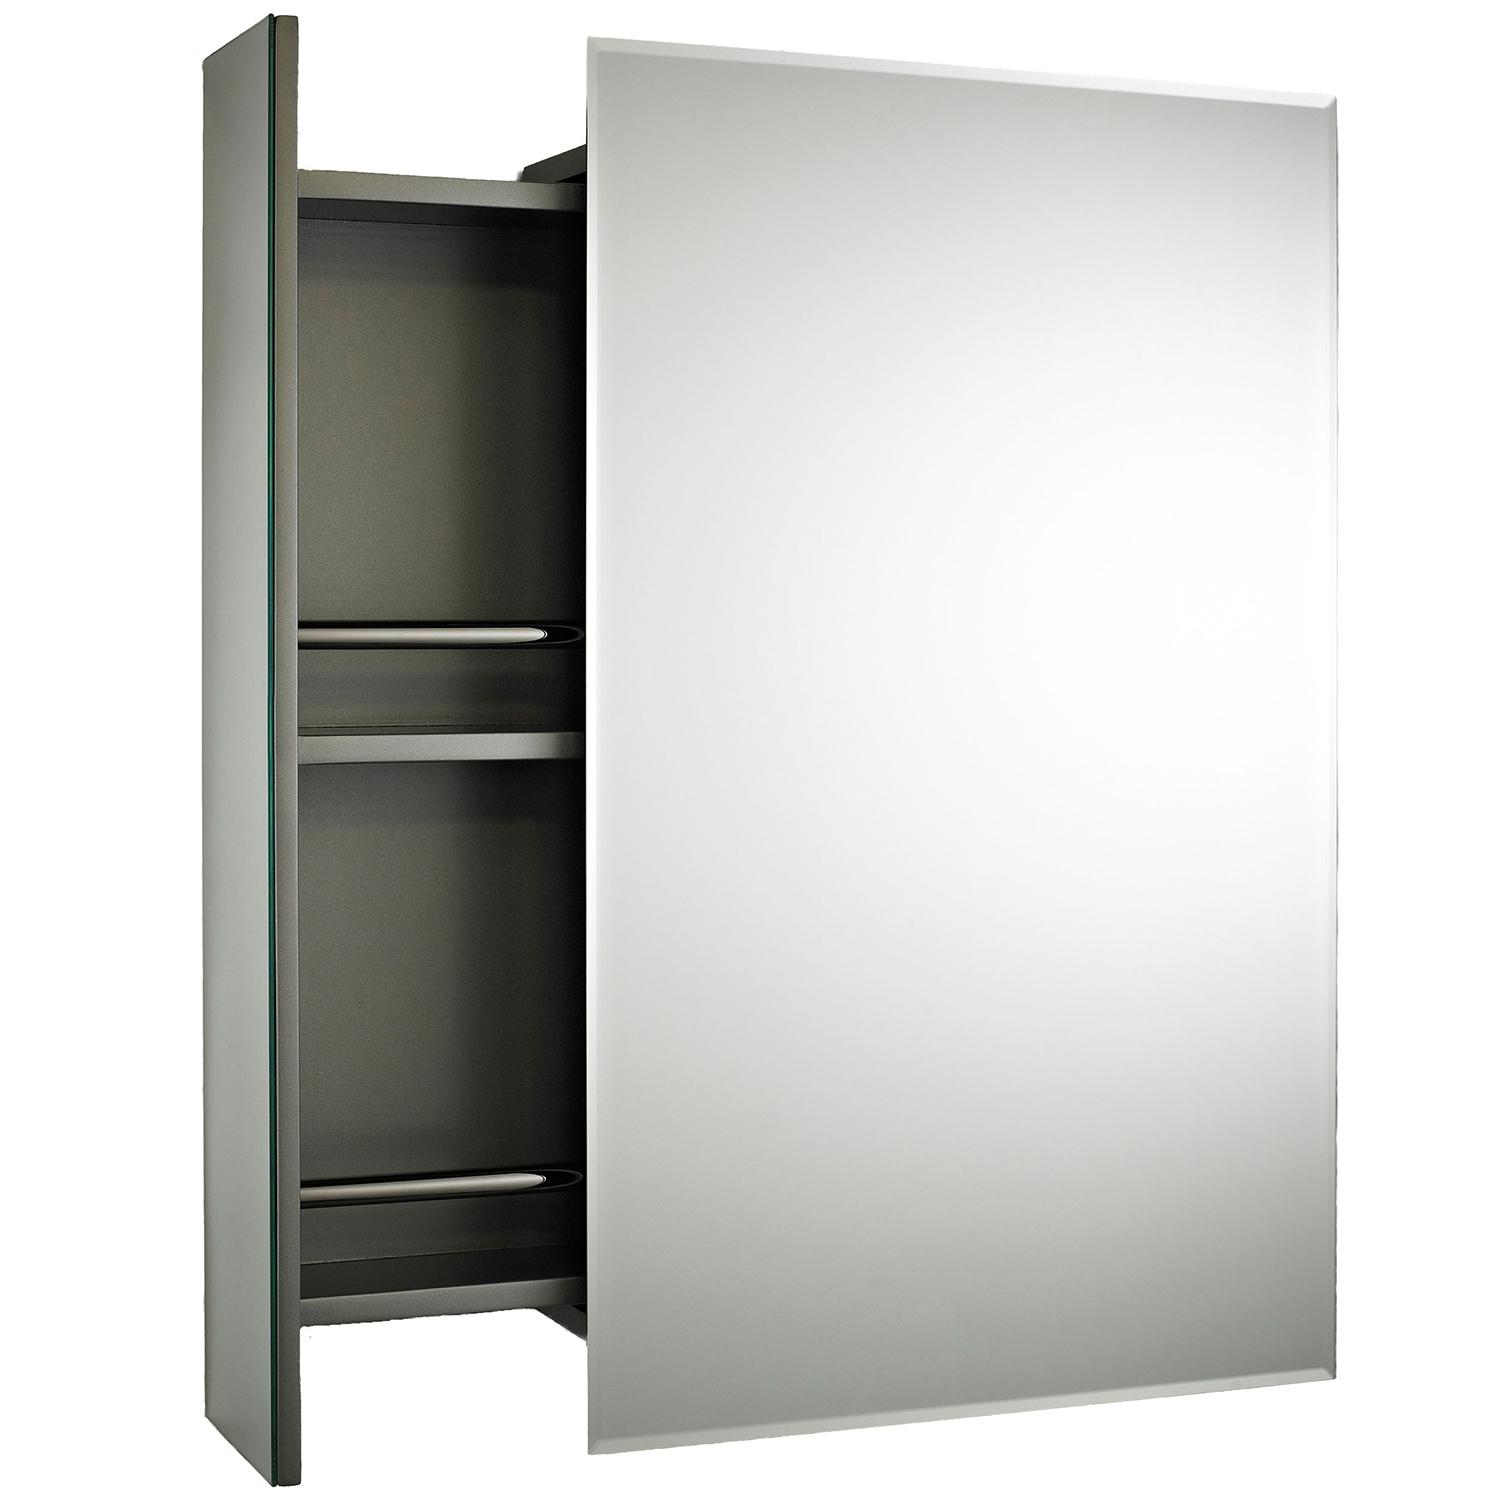 Premier Intrigue Mirrored Bathroom Cabinet 750mm H x 460mm W Stainless Steel-0